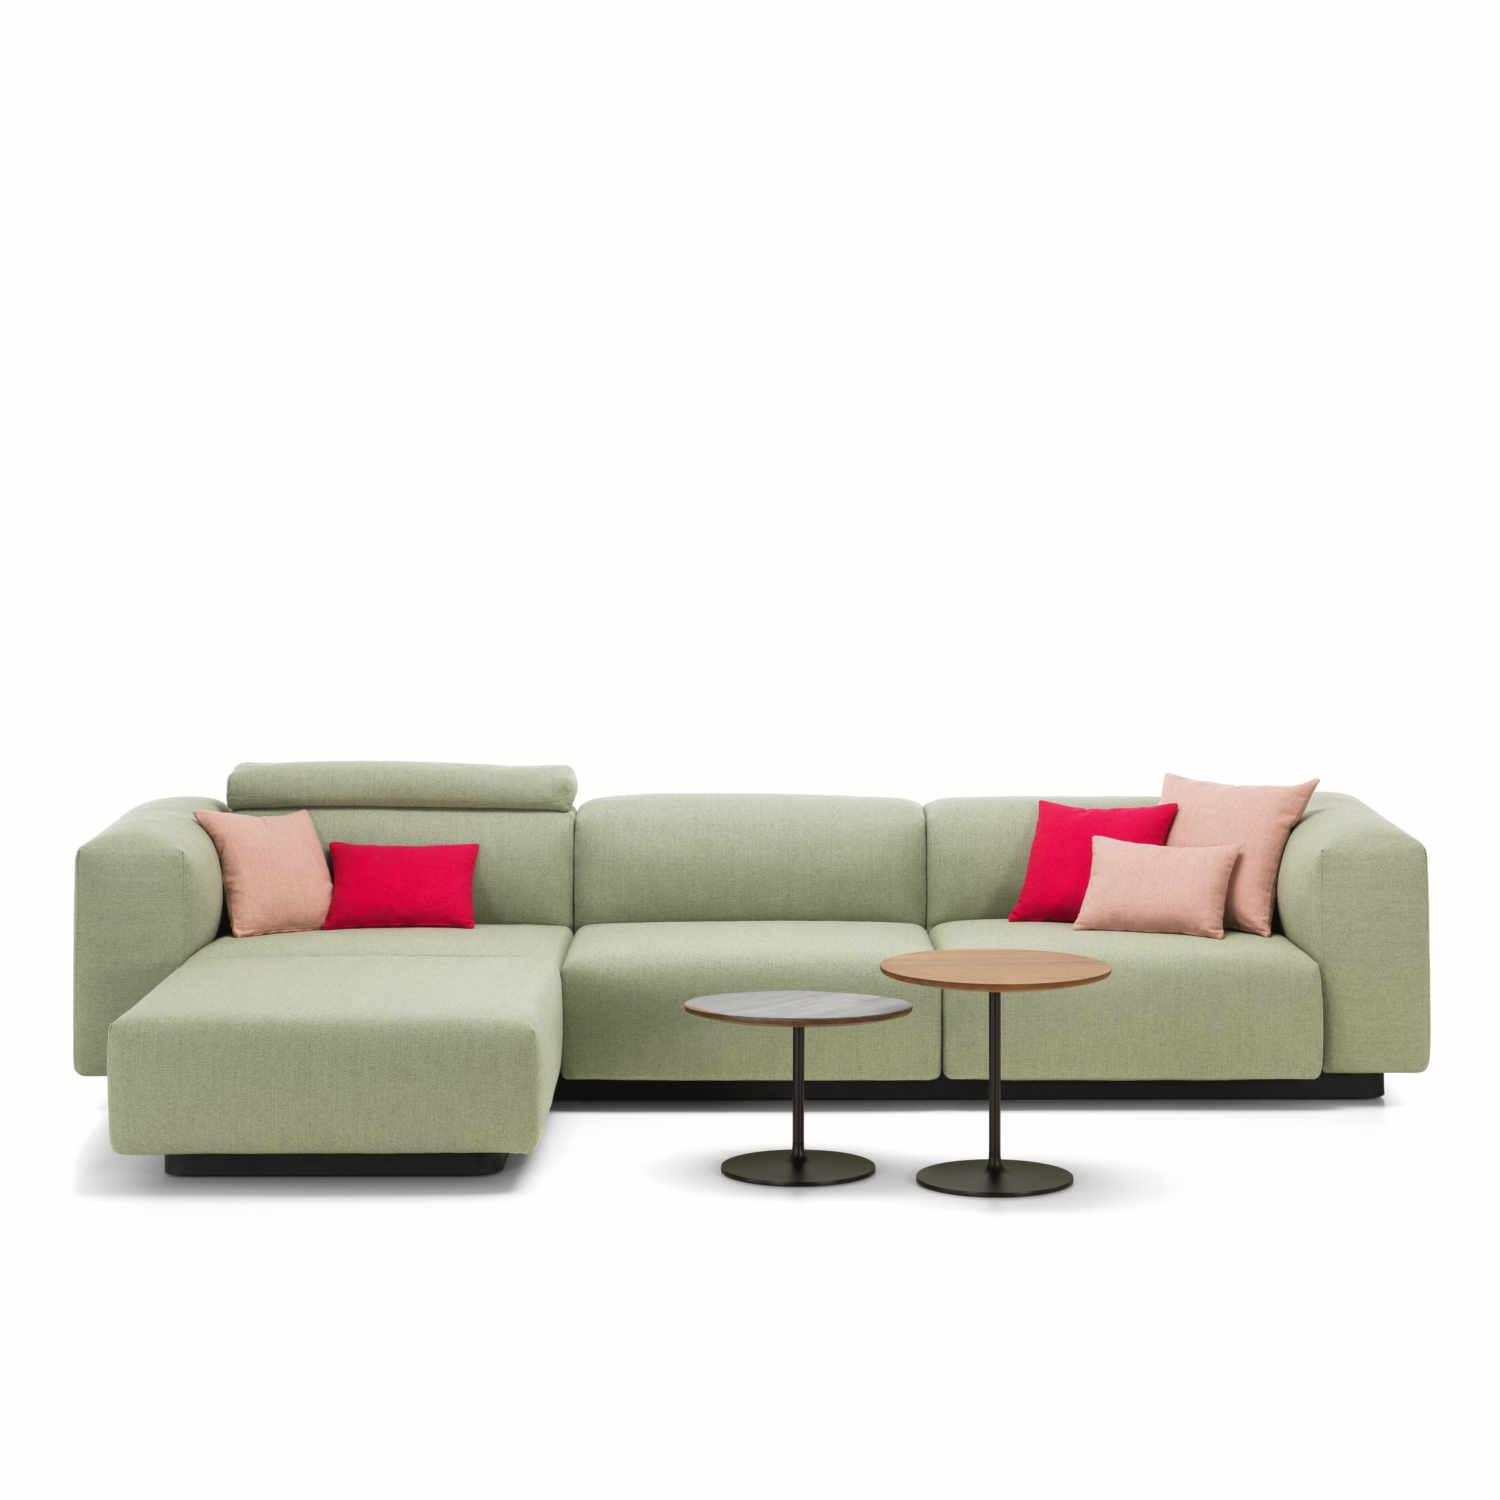 vitra sofa modular how to clean a that smells soft 3er chaise longue bruno wickart ch